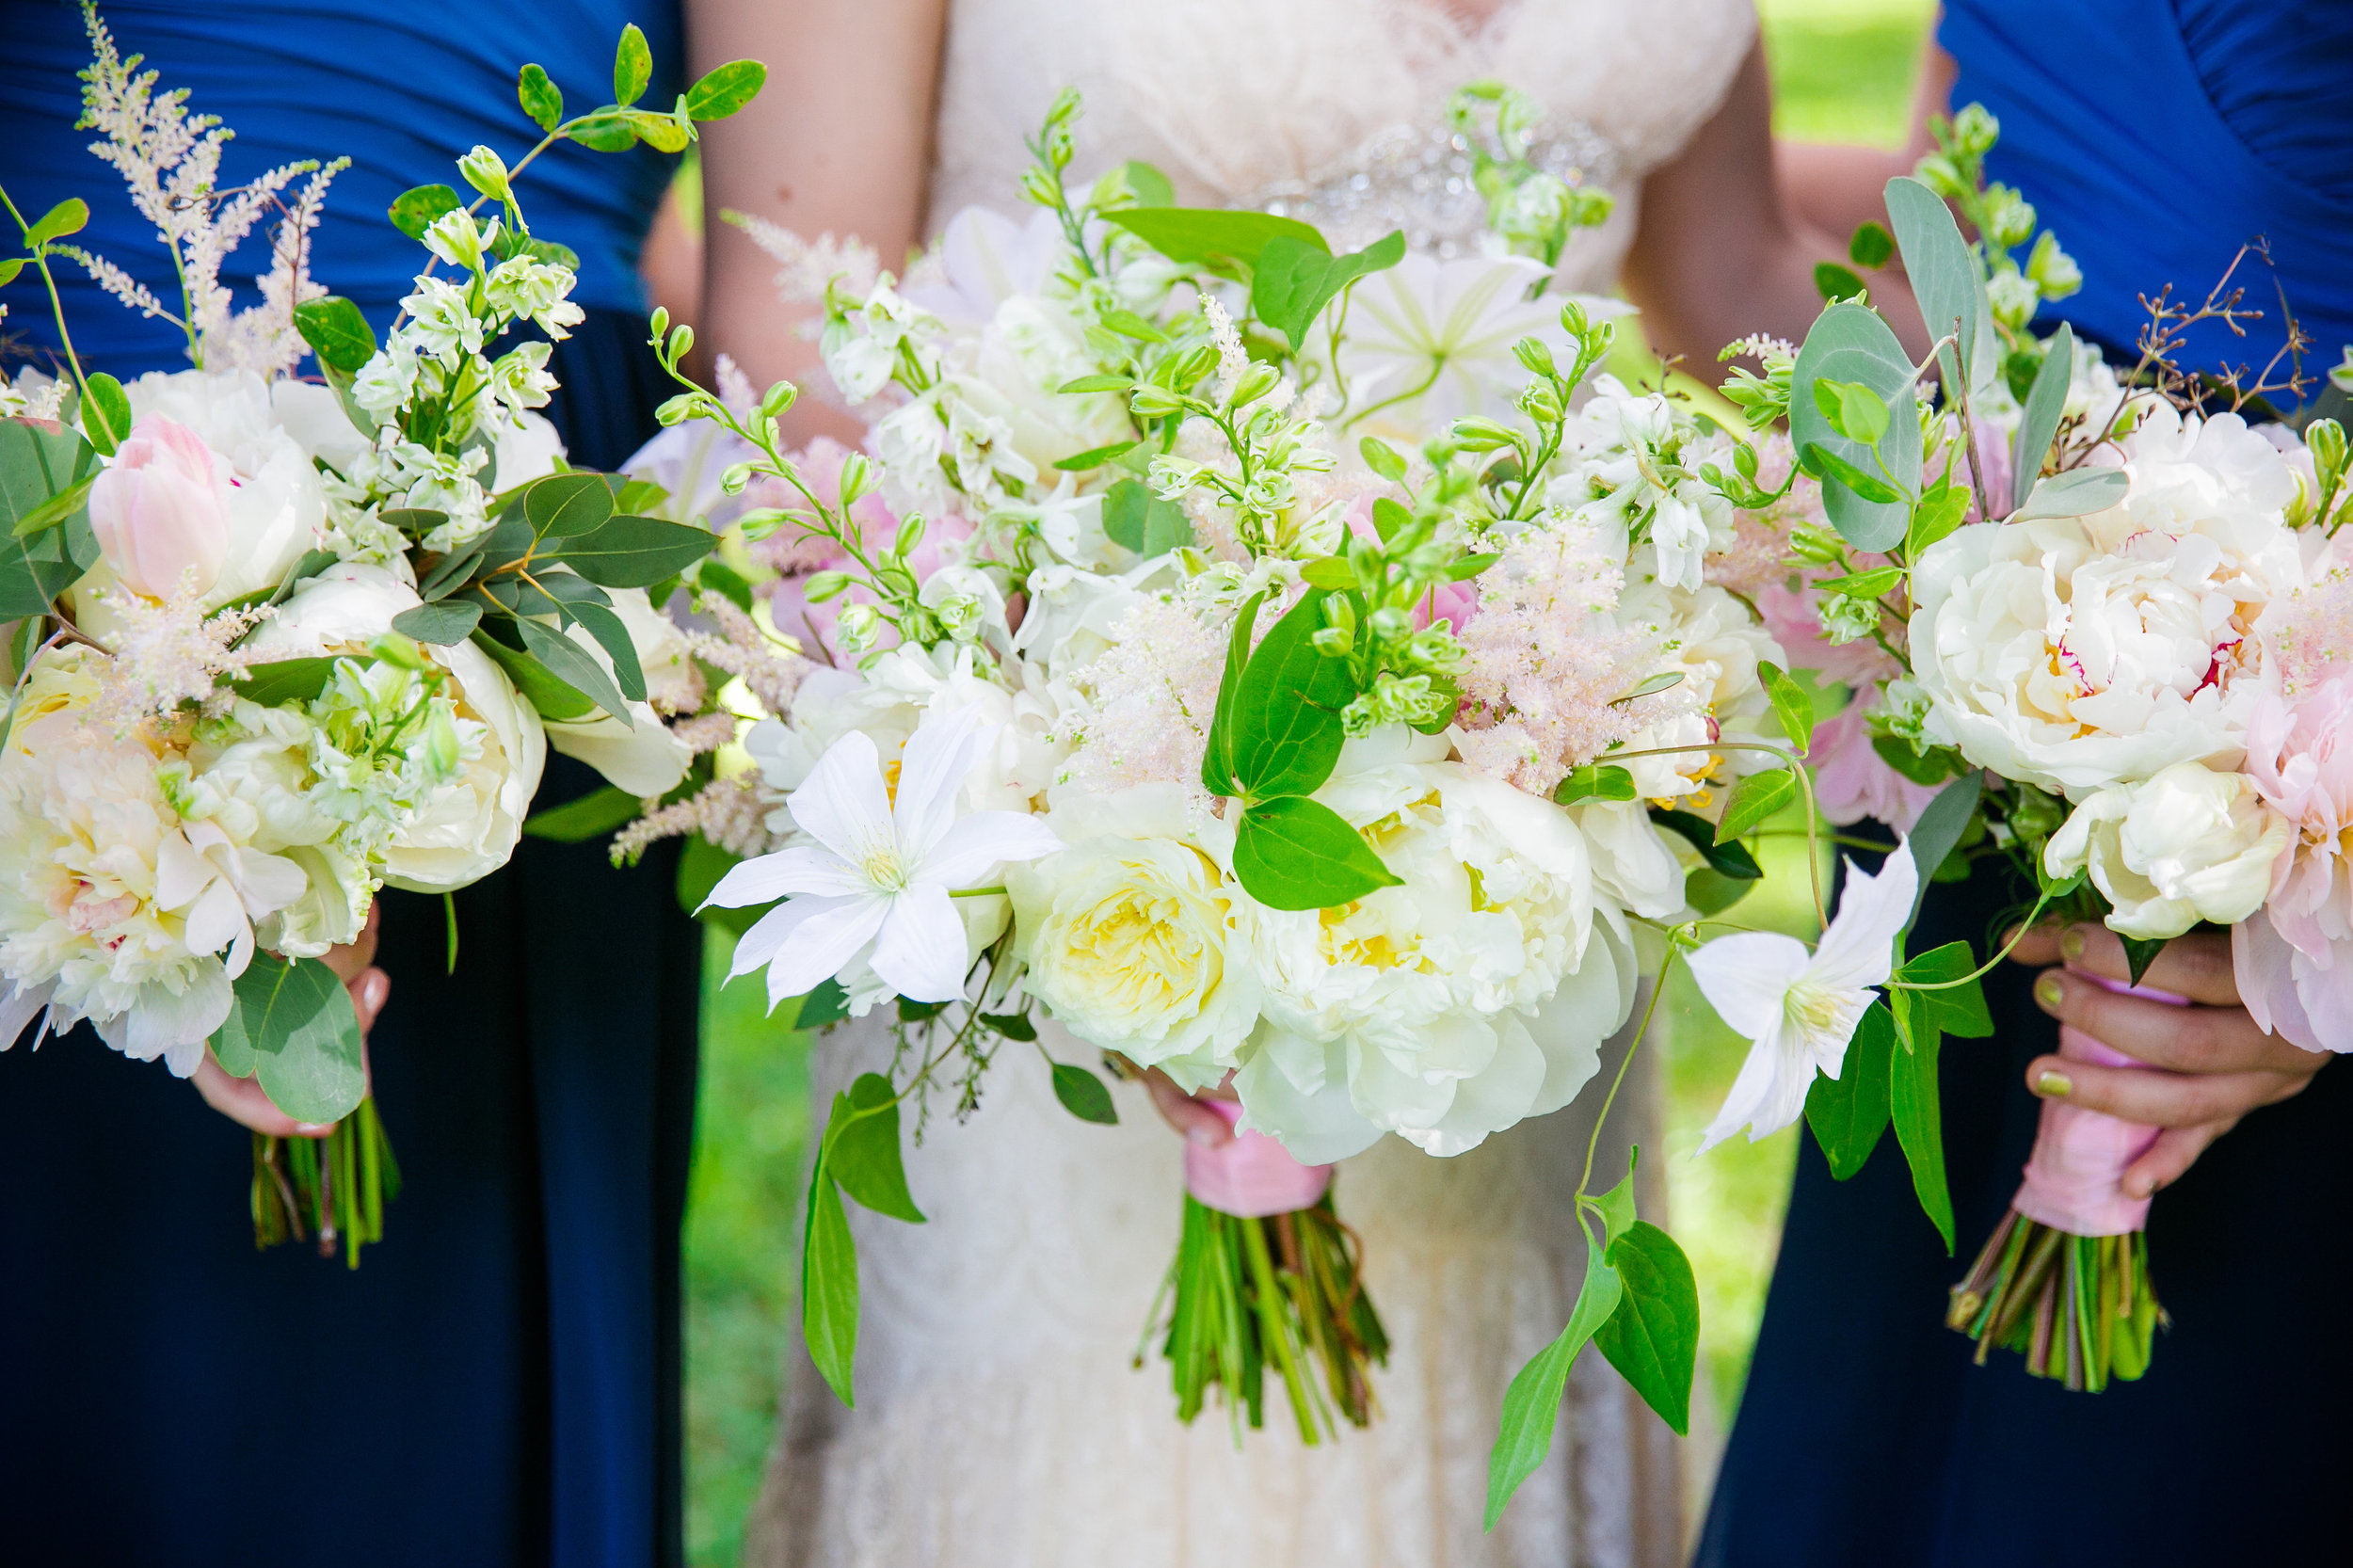 royal-blue-bridesmaids-dresses-with-white-and-blush-pink-bouquets